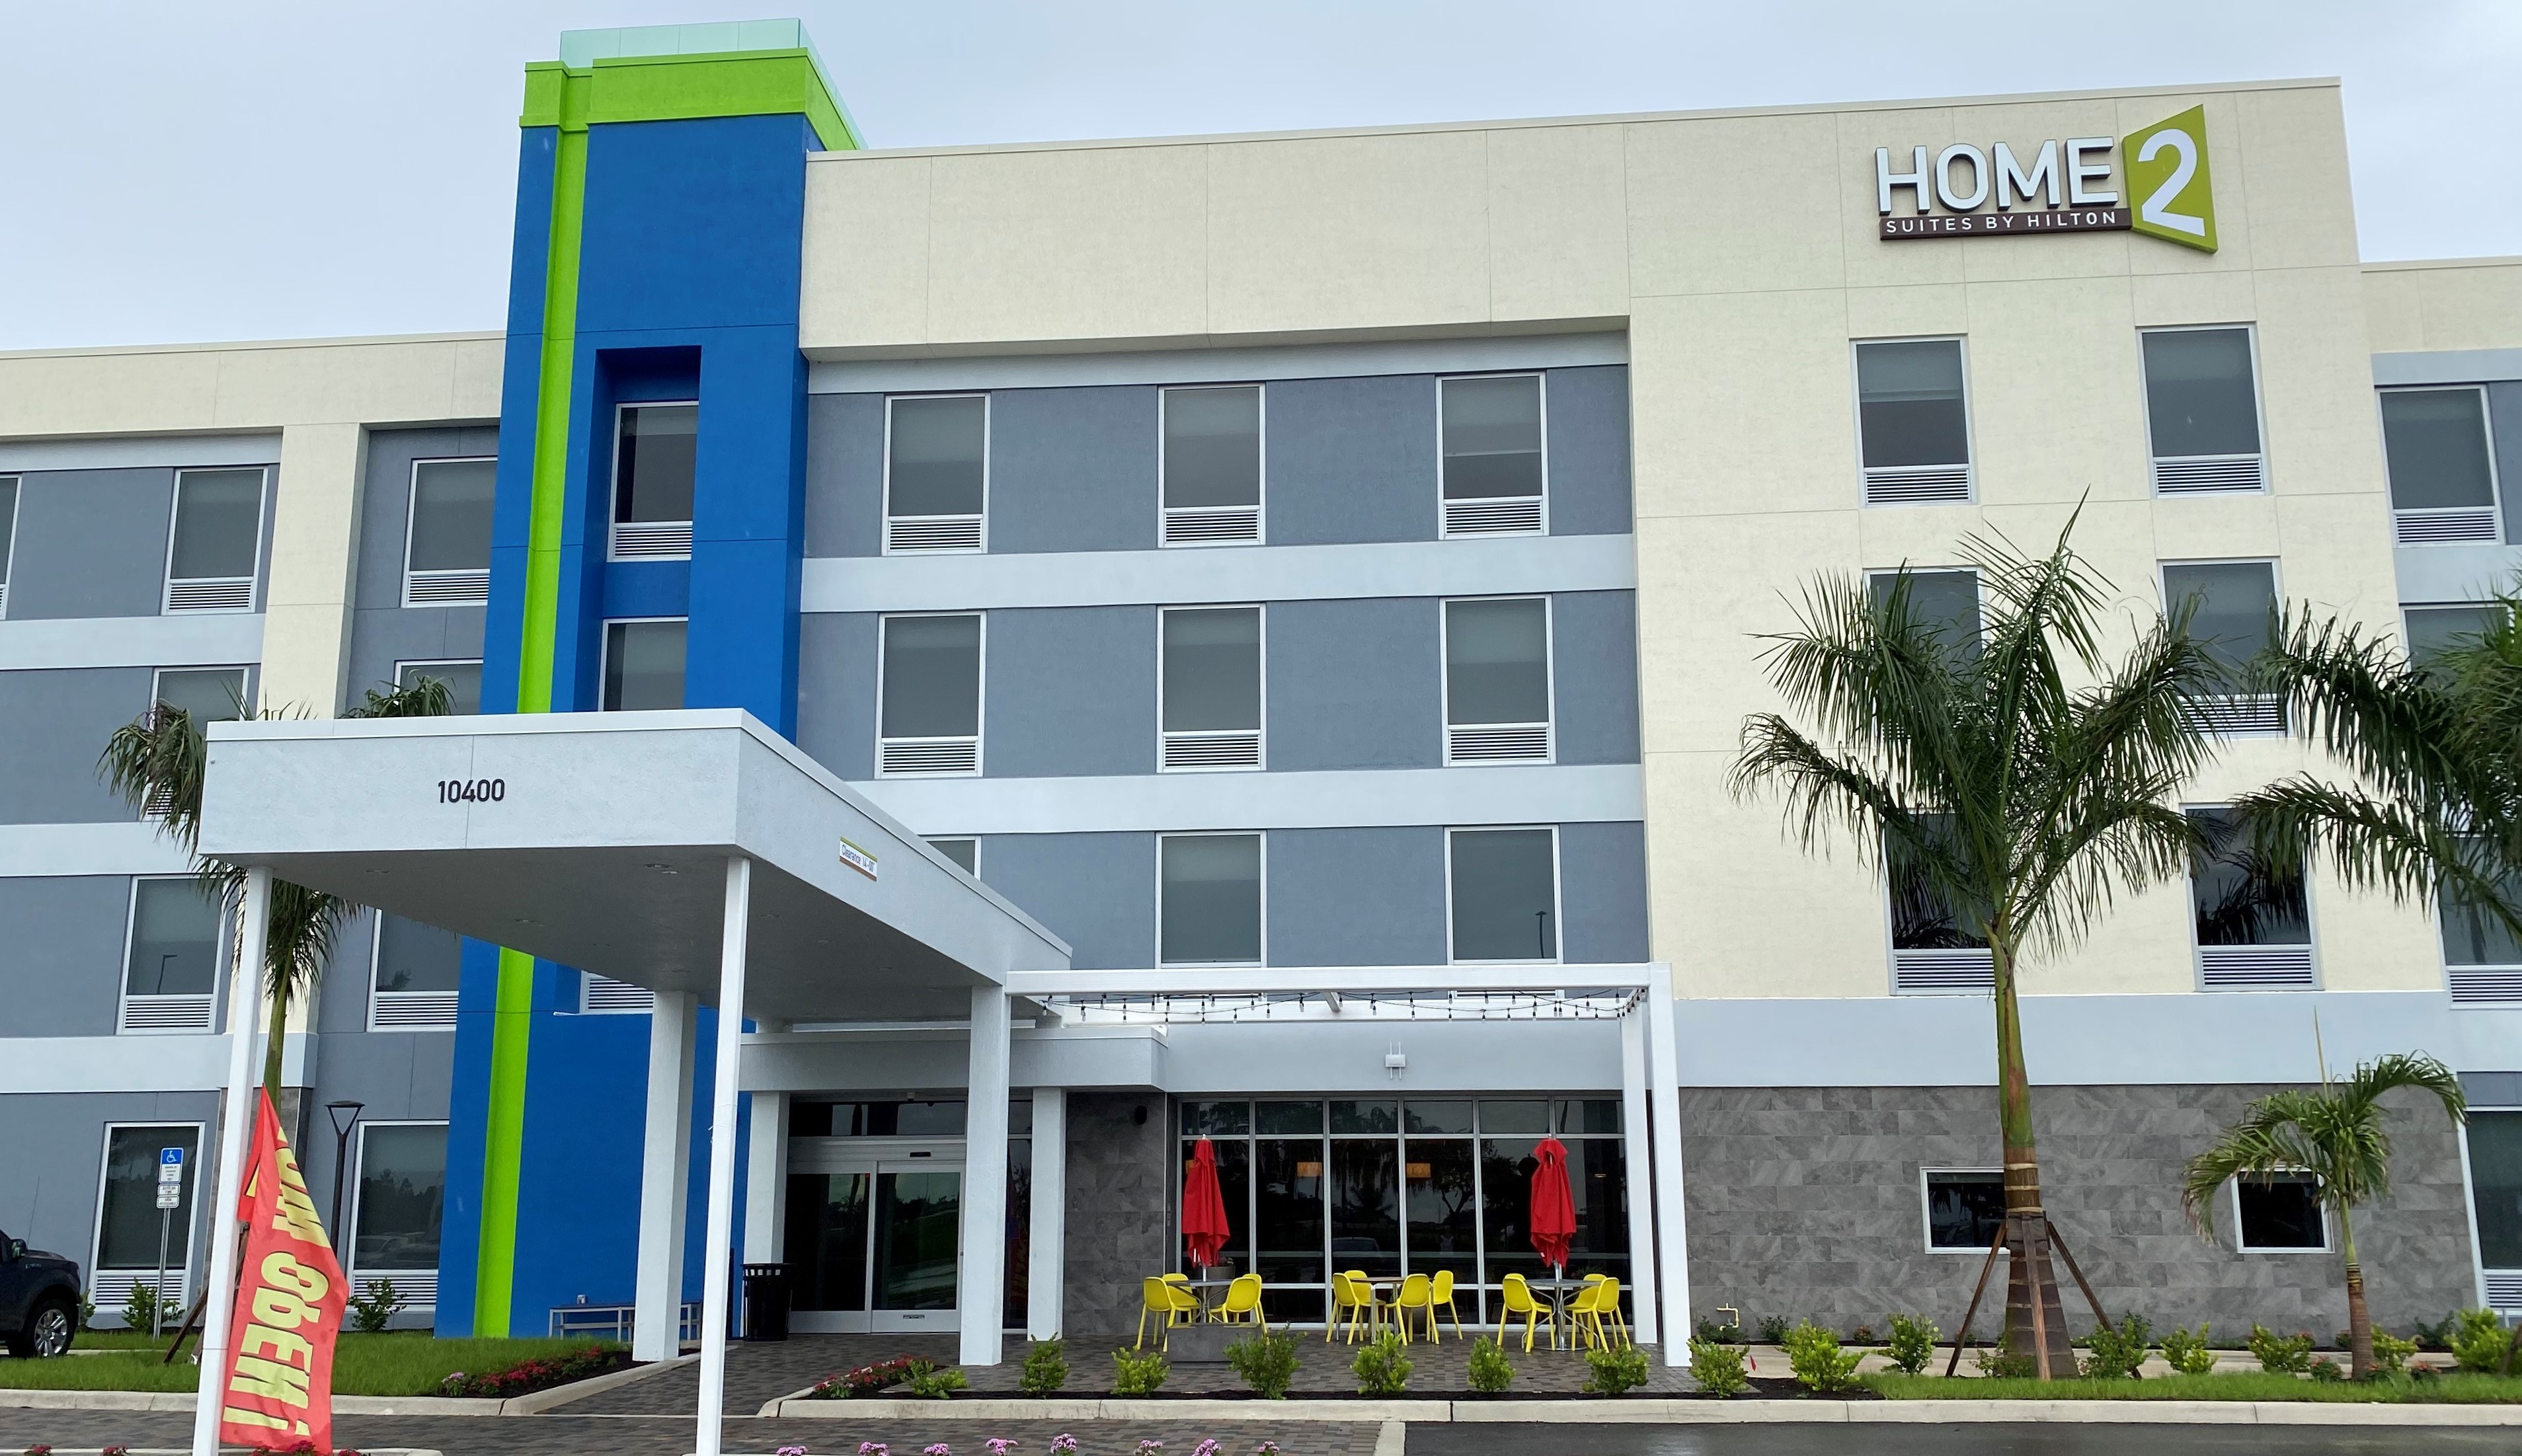 Home2 Suites by Hilton Fort Myers Airport